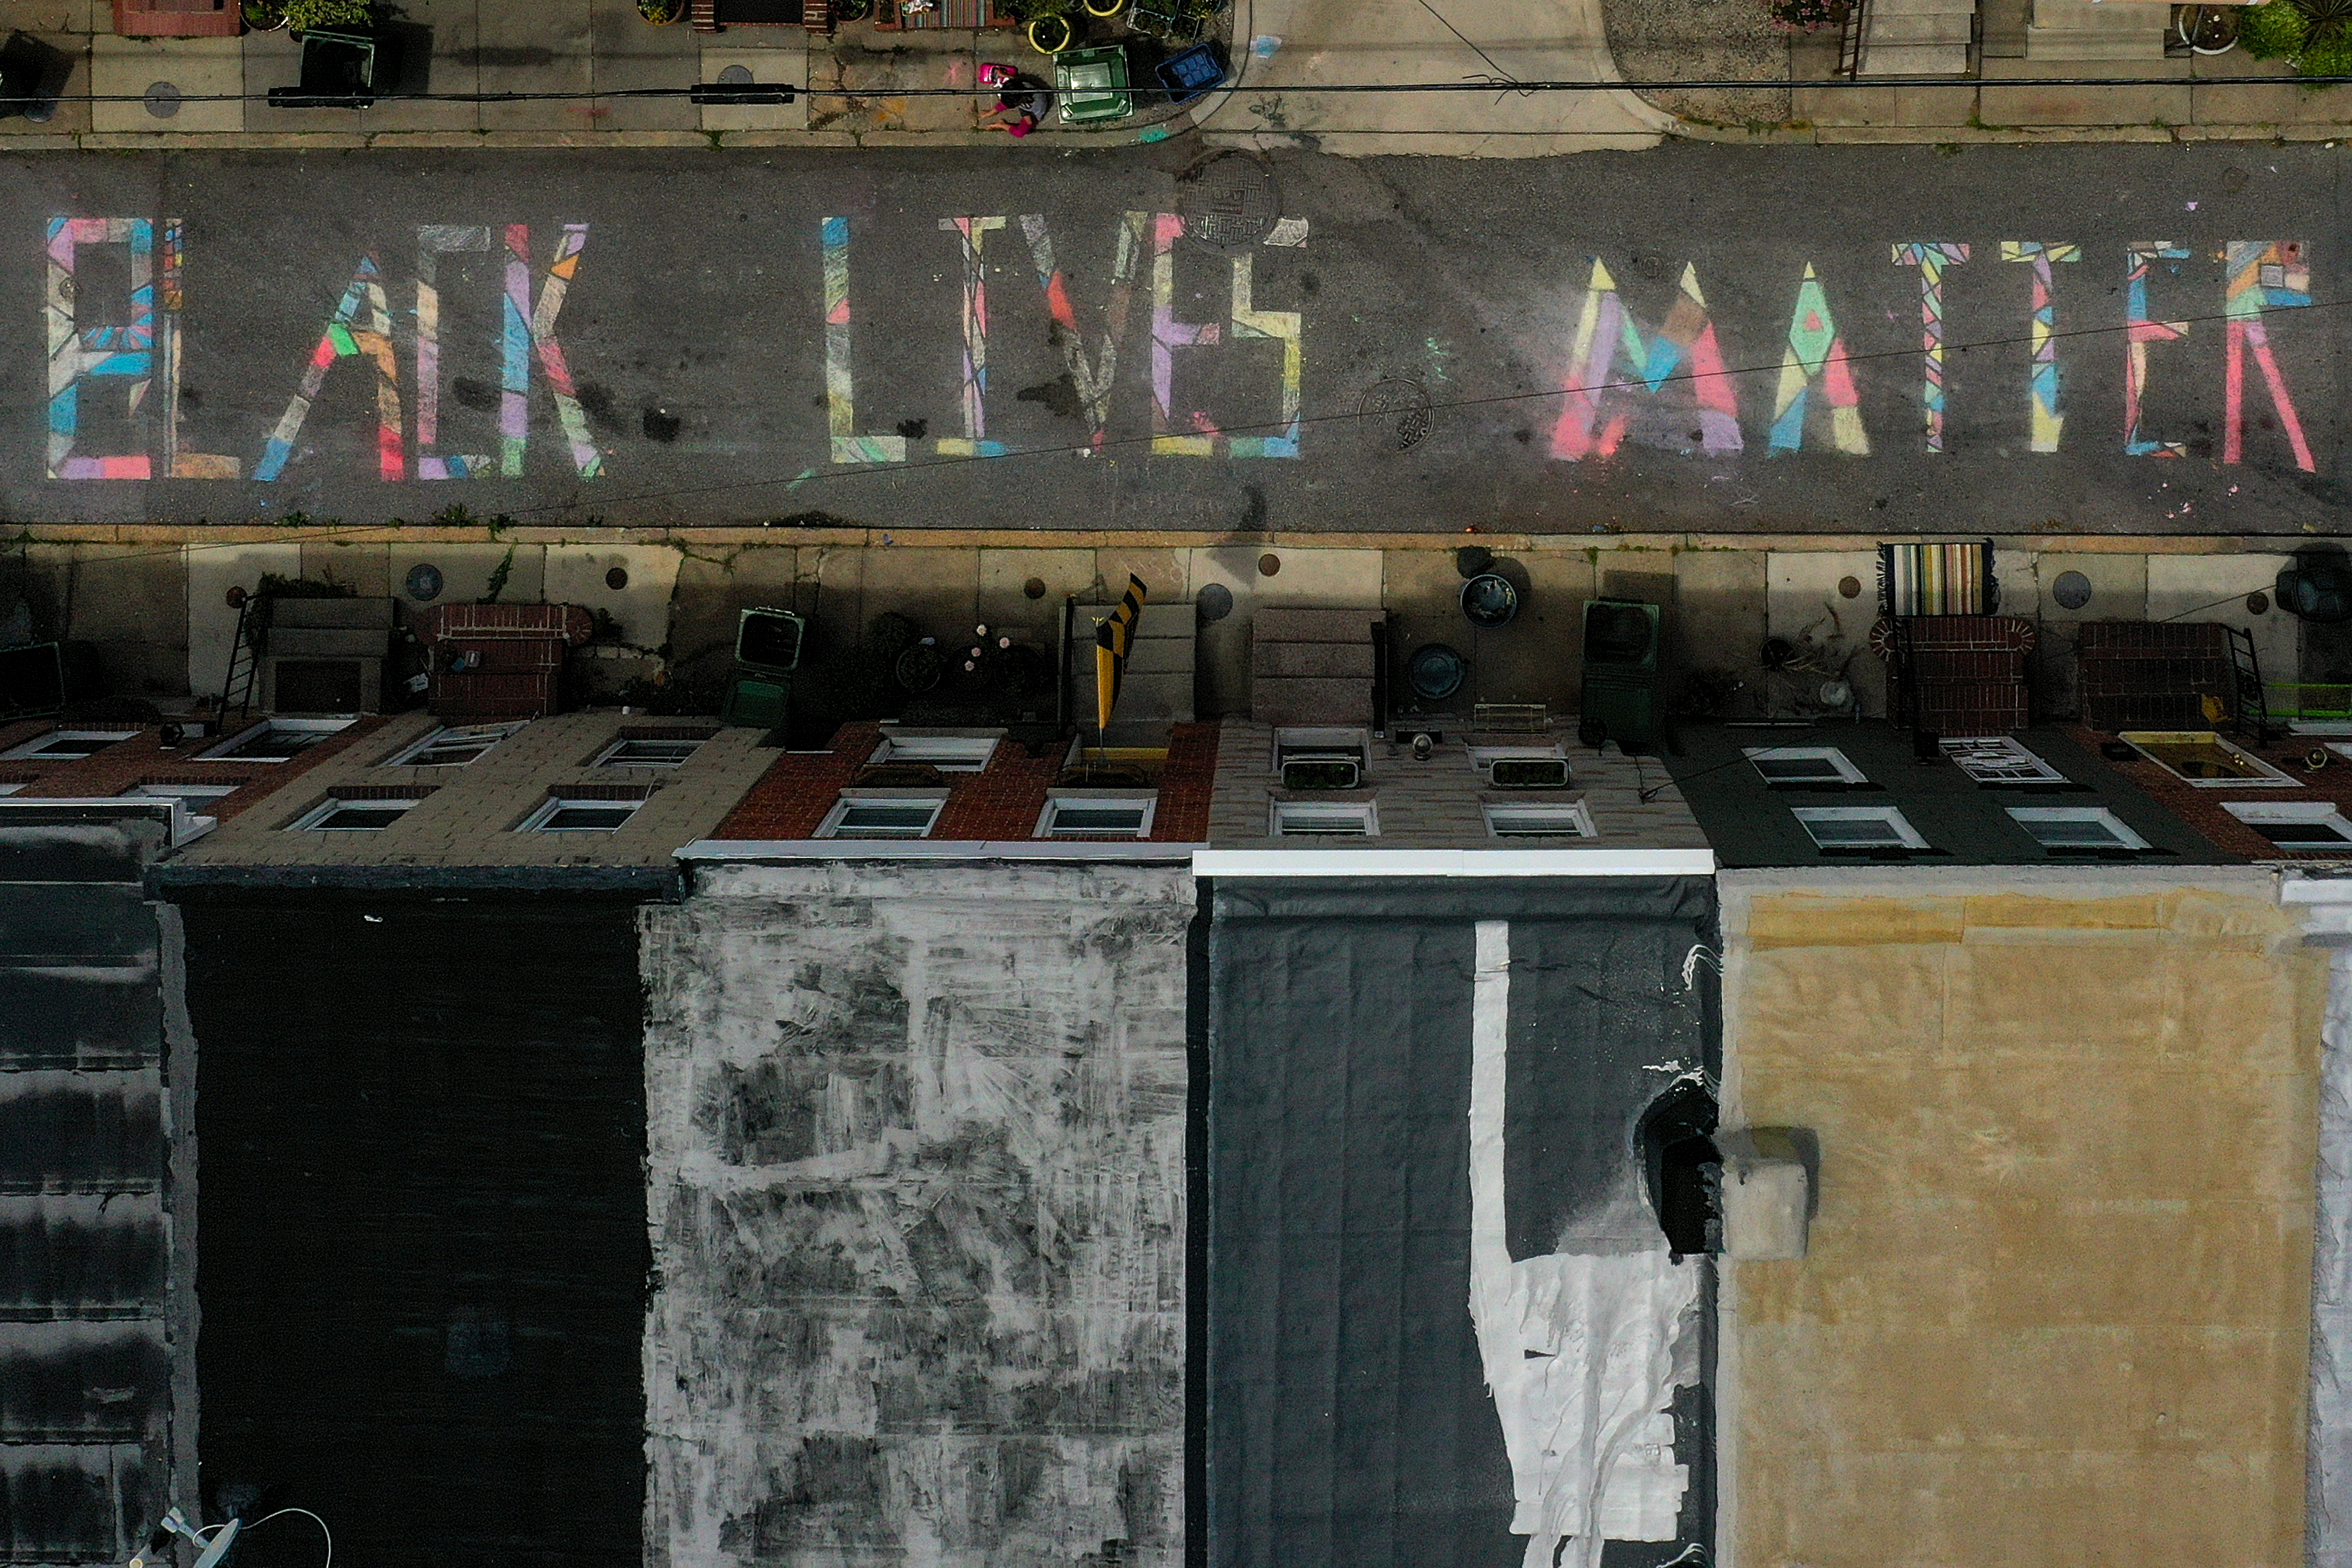 BALTIMORE, MARYLAND - JUNE 16: In an aerial image from a drone, a 'Black Lives Matter' mural chalk painting is seen on the 300 block of South Madeira Street on June 16, 2020 in Baltimore, Maryland. Black Lives Matter has become both a vocal and visual theme as protests have continued worldwide following the police killings of George Floyd in Minneapolis. (Photo by Patrick Smith/Getty Images)